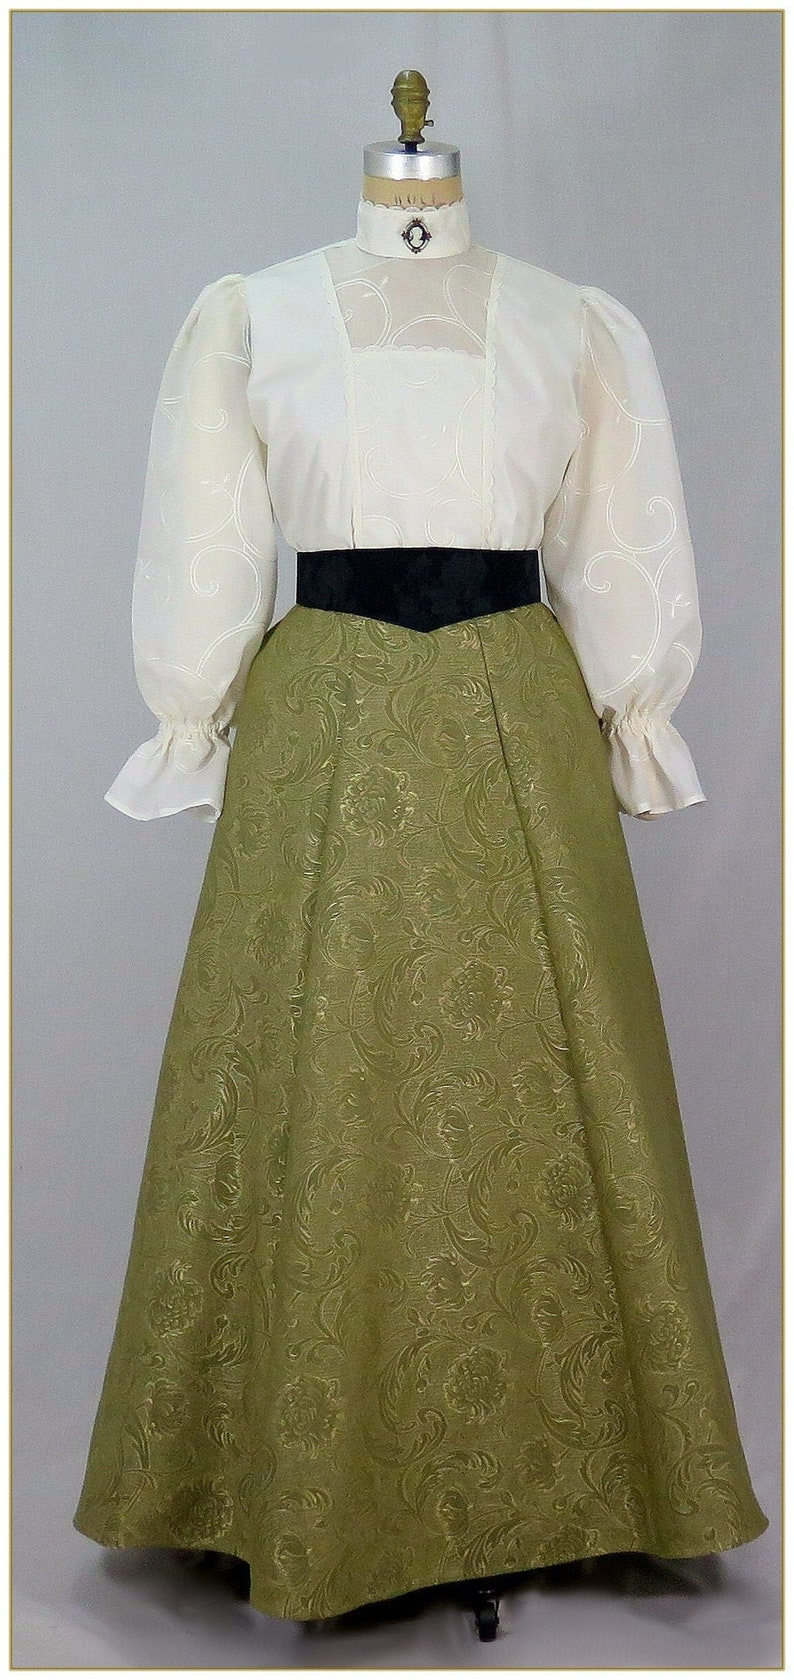 Make an Easy Victorian Costume Dress with a Skirt and Blouse Edwardian Olive Brocade Skirt $65.00 AT vintagedancer.com